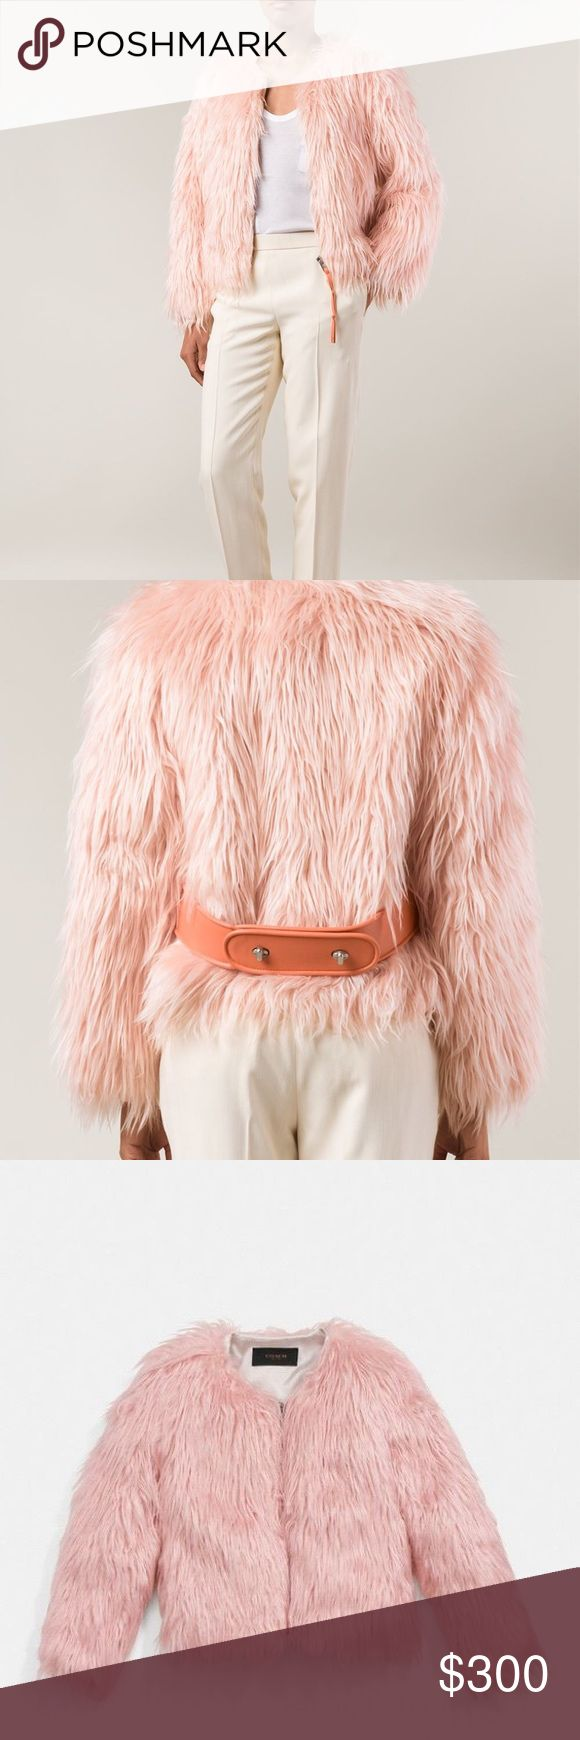 Coach Cropped Furry Jacket Beautiful pink fur jacket. Calfskin leather coral belt. I would keep this item but it is far too big on me. If you like over sized looks, it would still be cute! However the belt is heavy so it tends to dip a bit if it's too big (not a big deal). Worn very very lightly. Coach Jackets & Coats